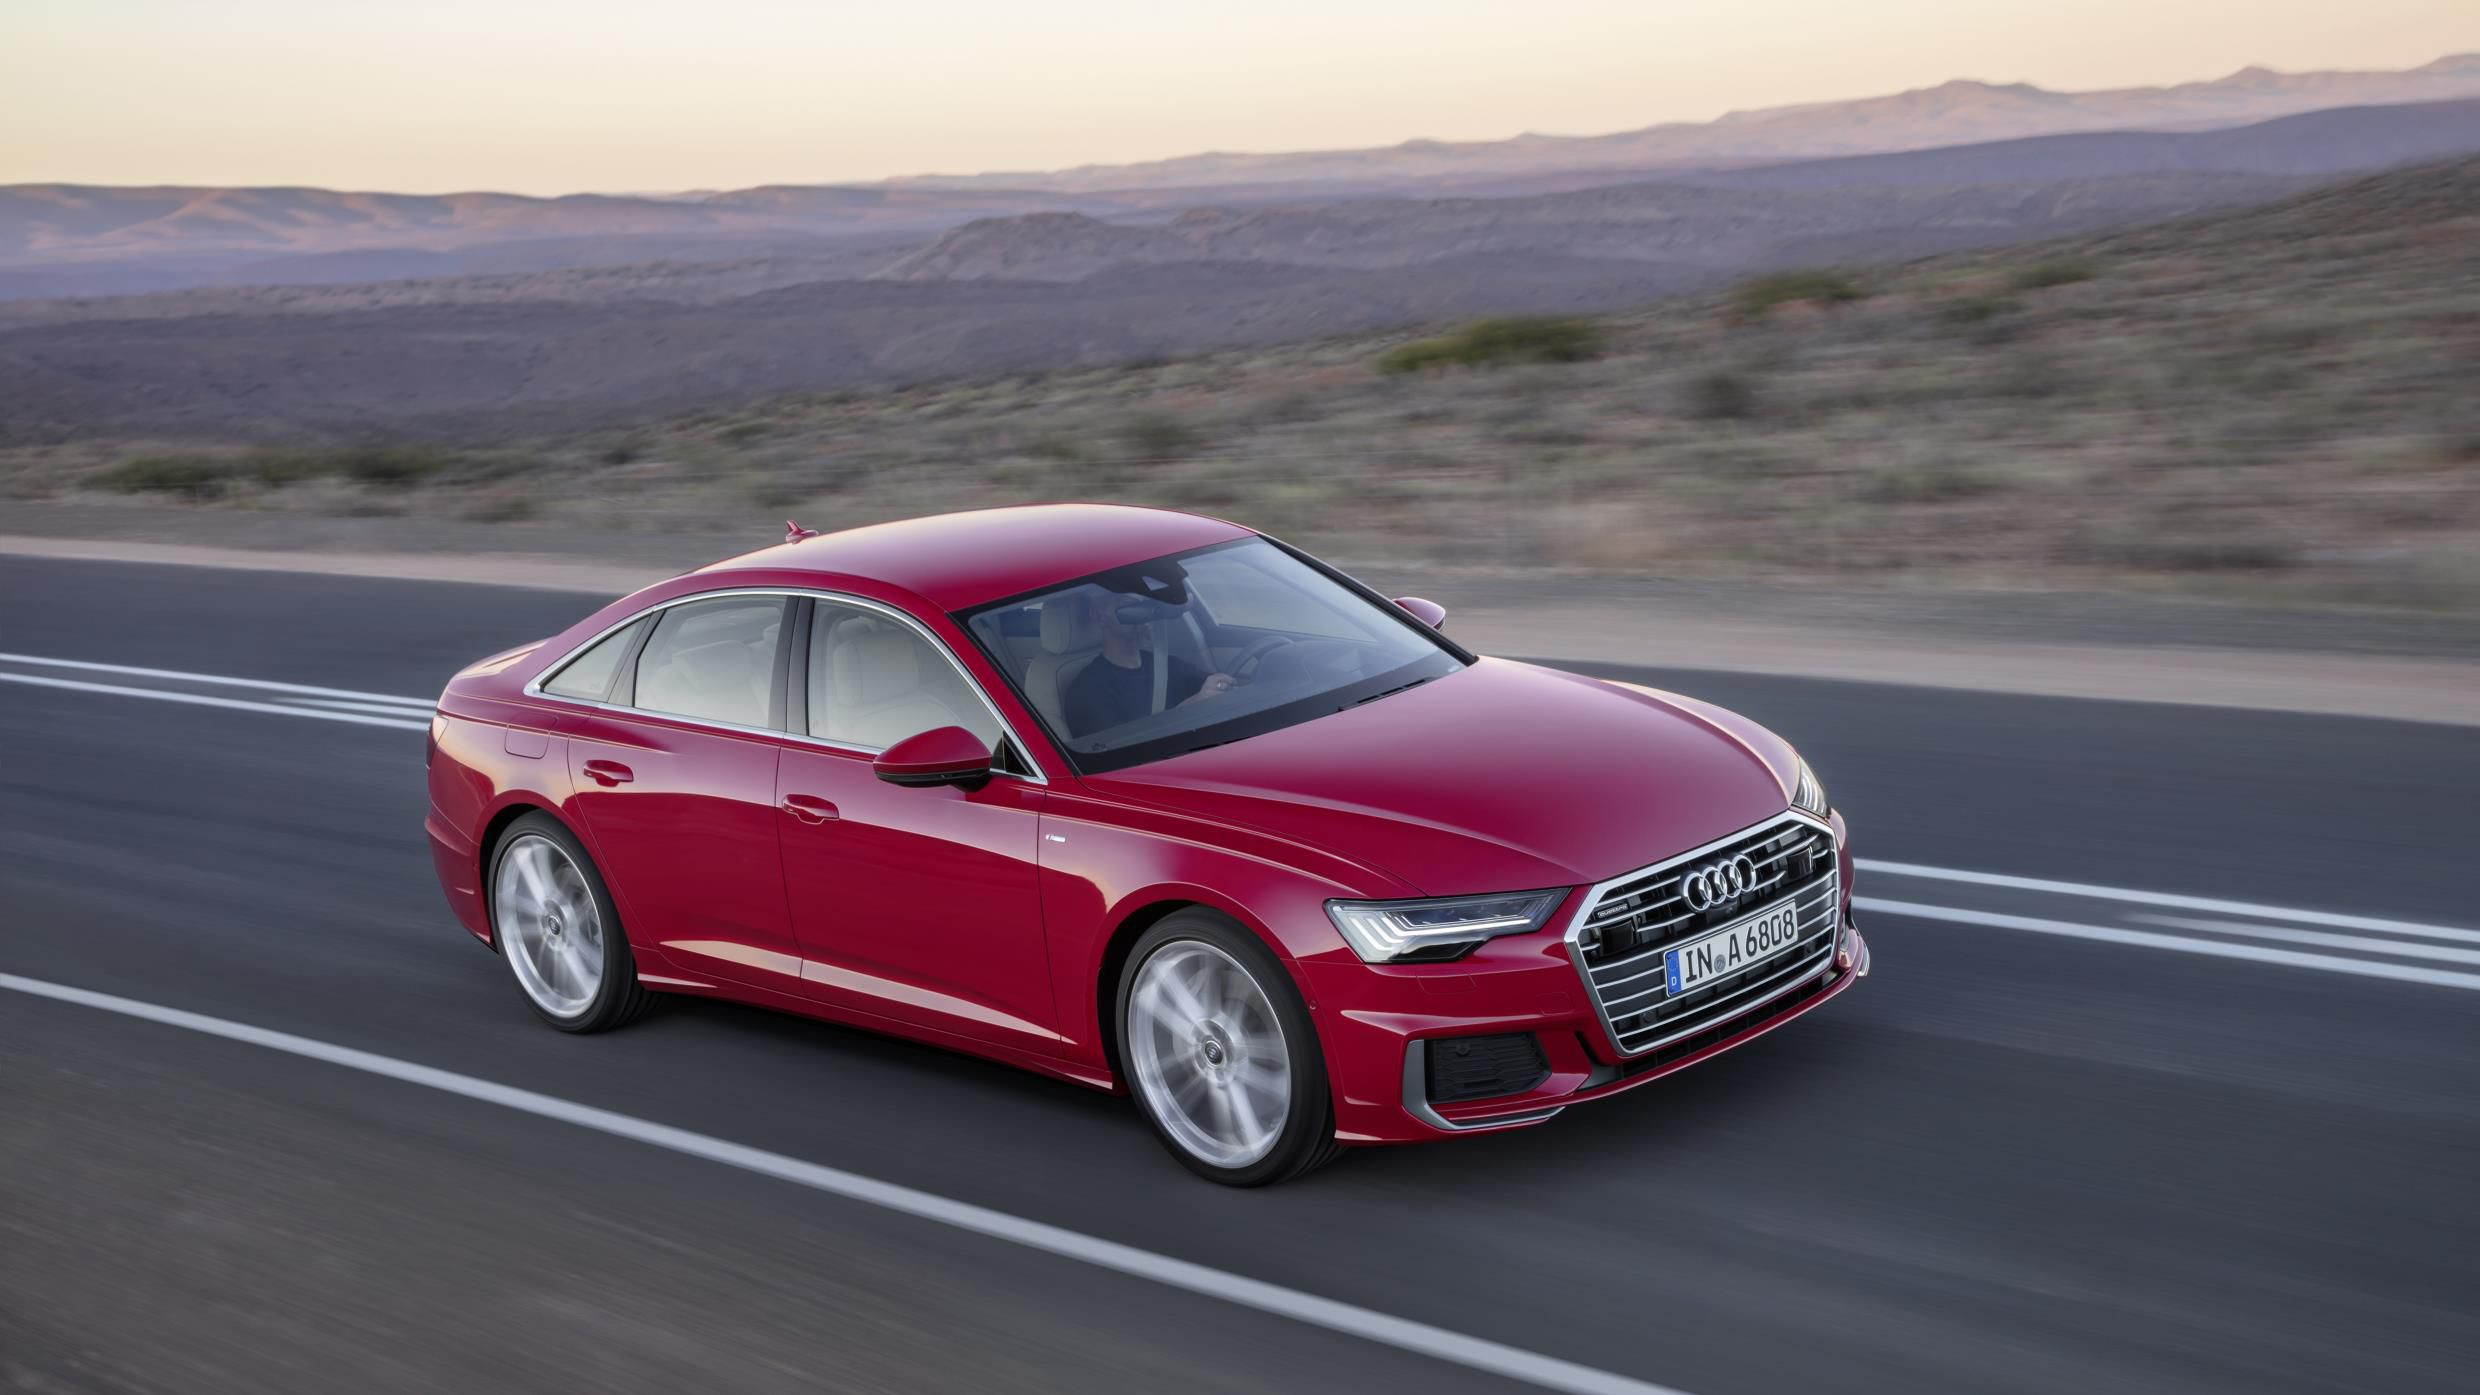 Red Audi A6 being driven fast on an empty road